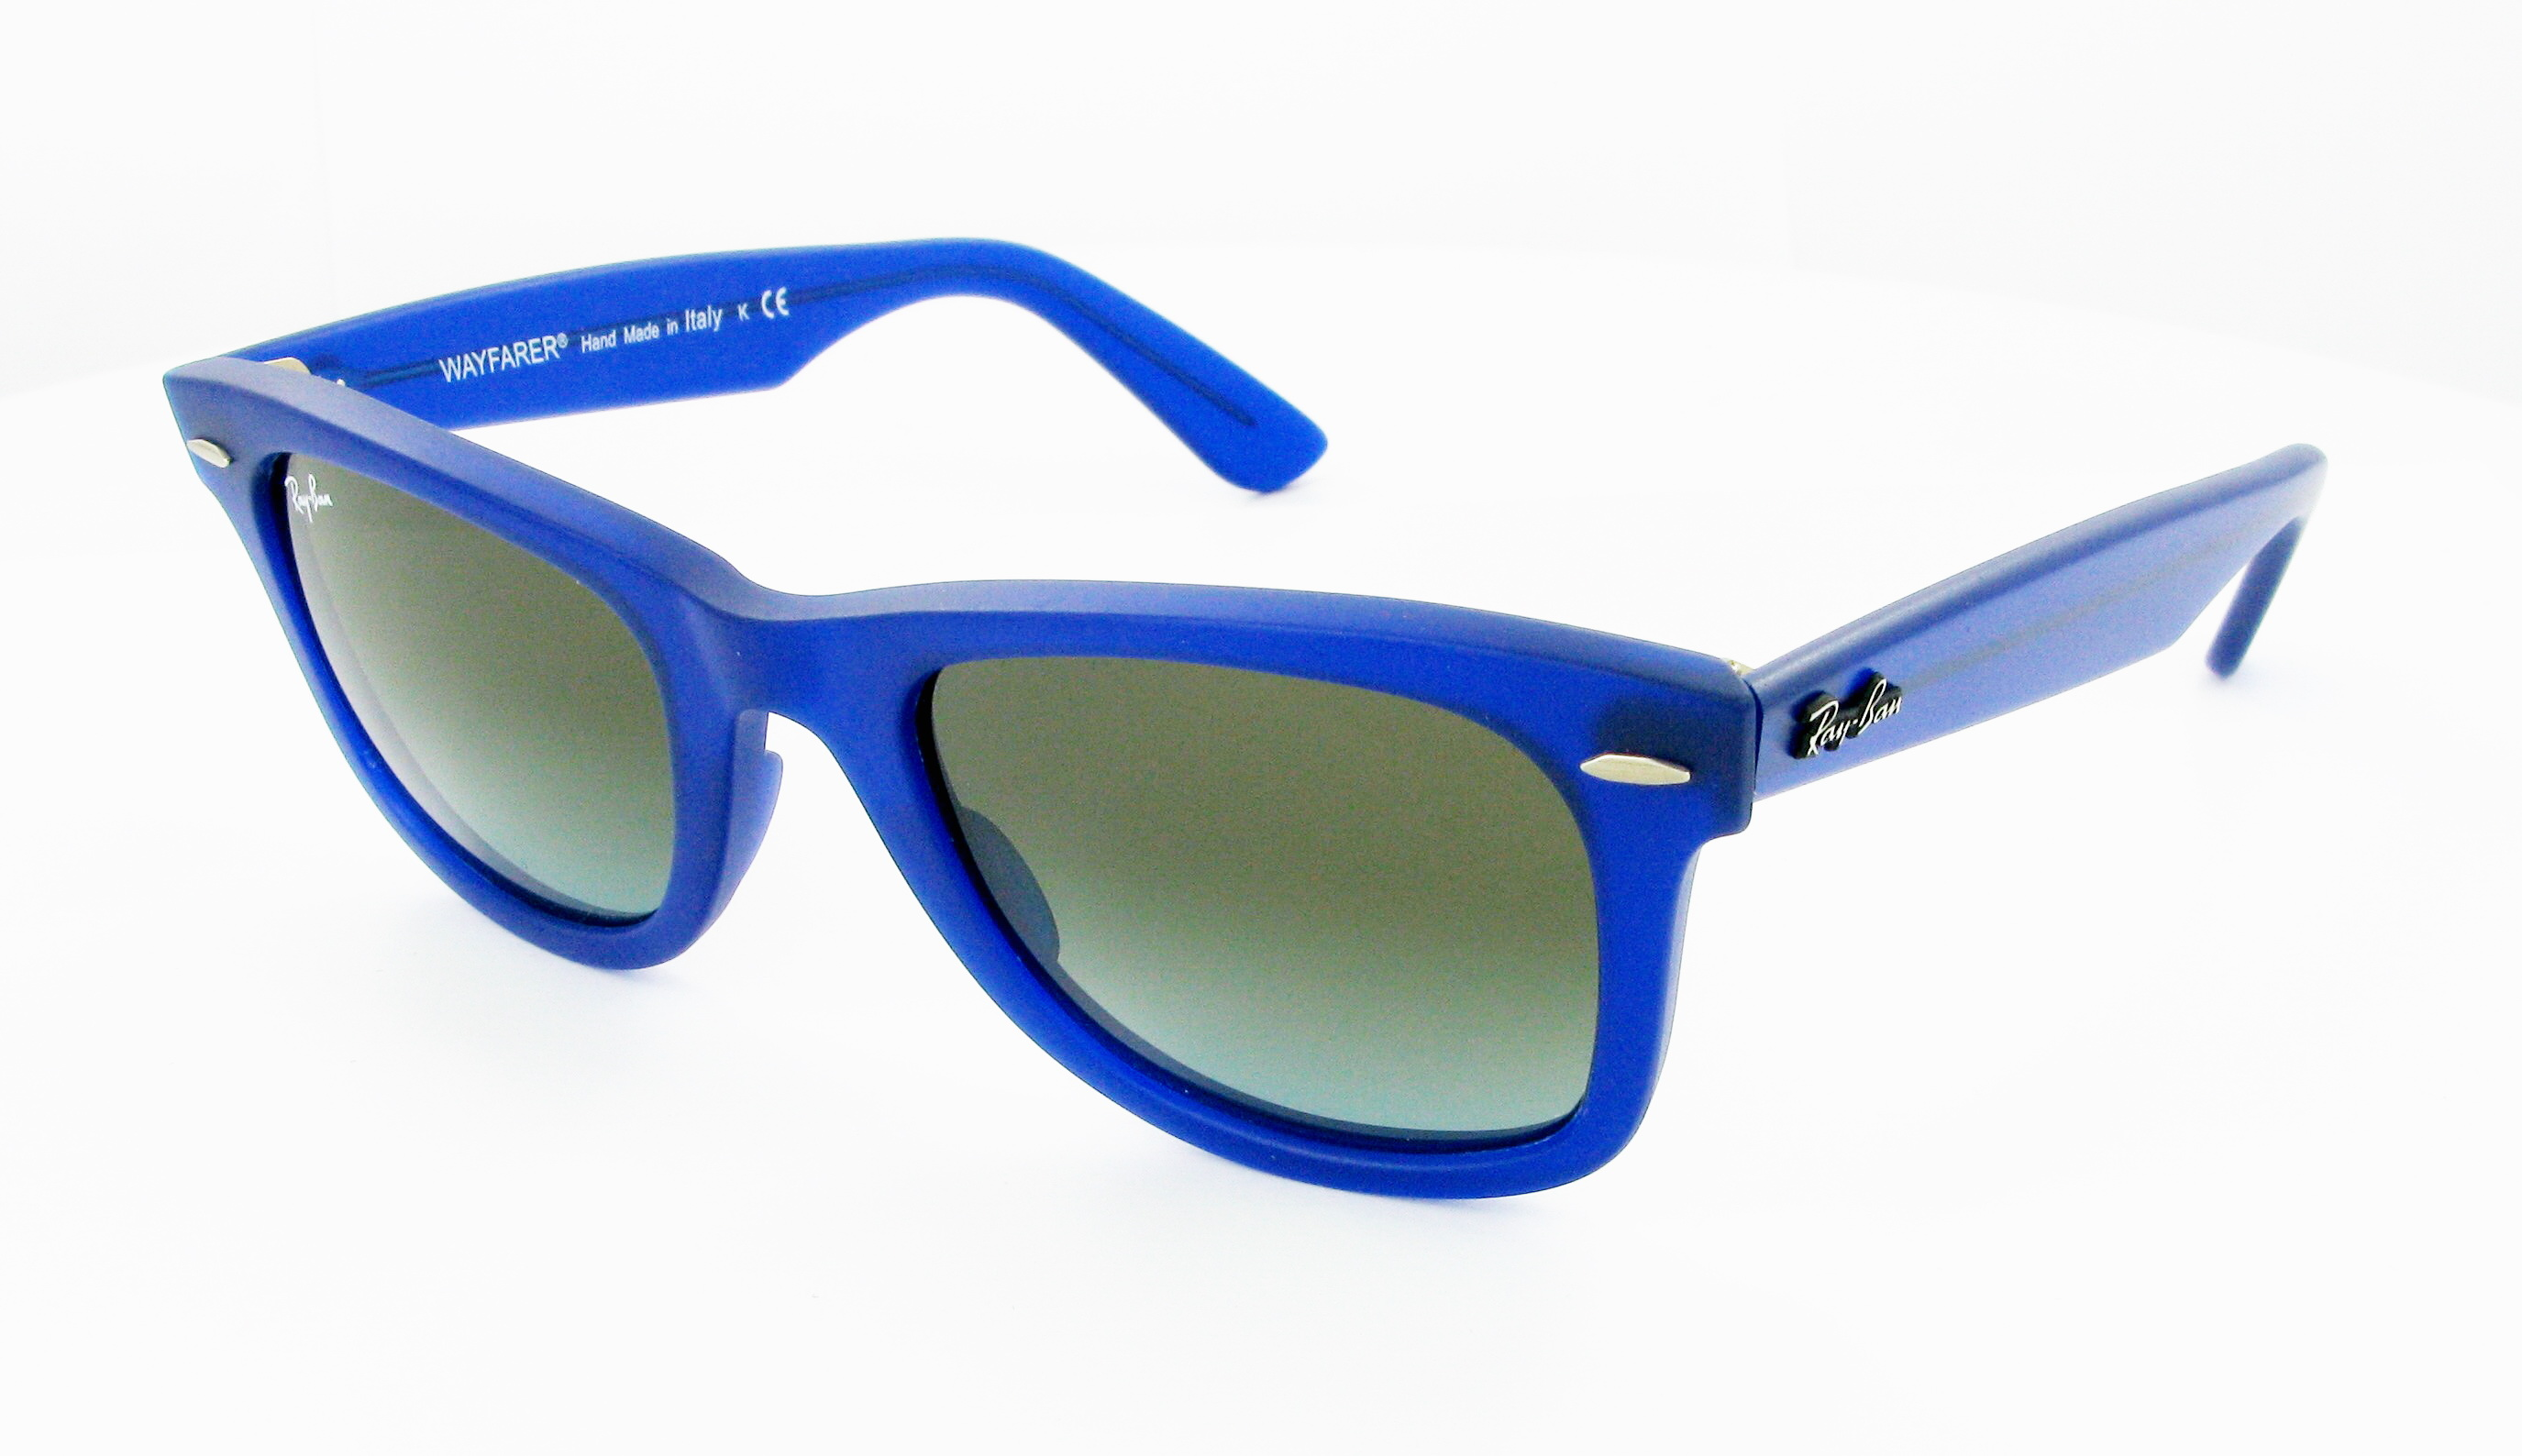 60184d3a4a0 Ray Ban Clubmaster Differences « Heritage Malta